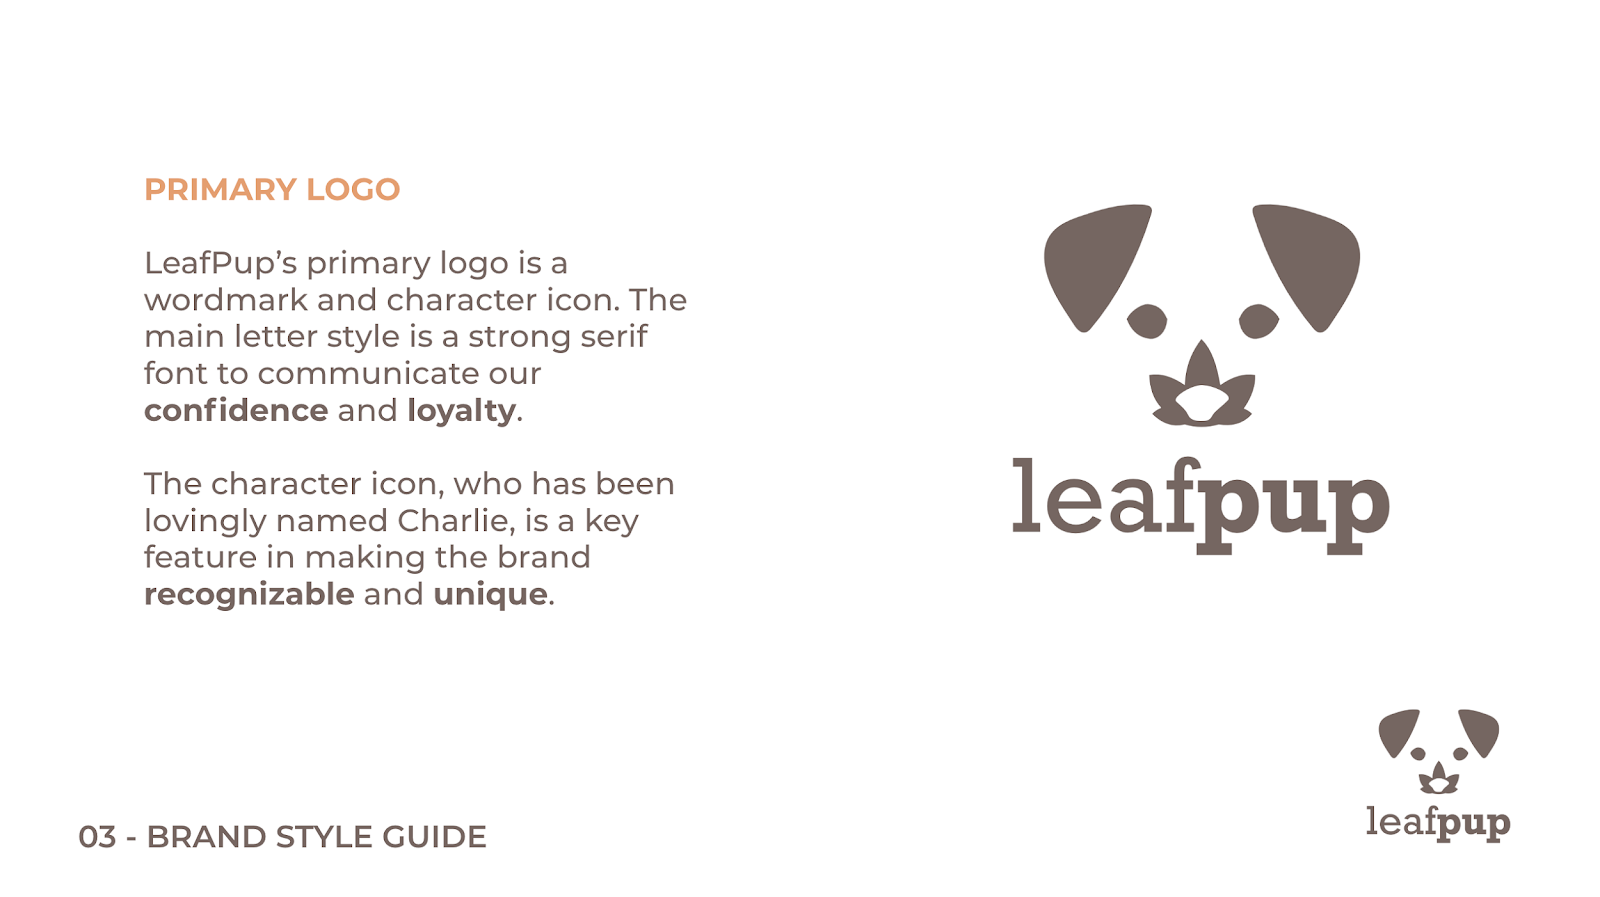 Leafpup's Primary Logo